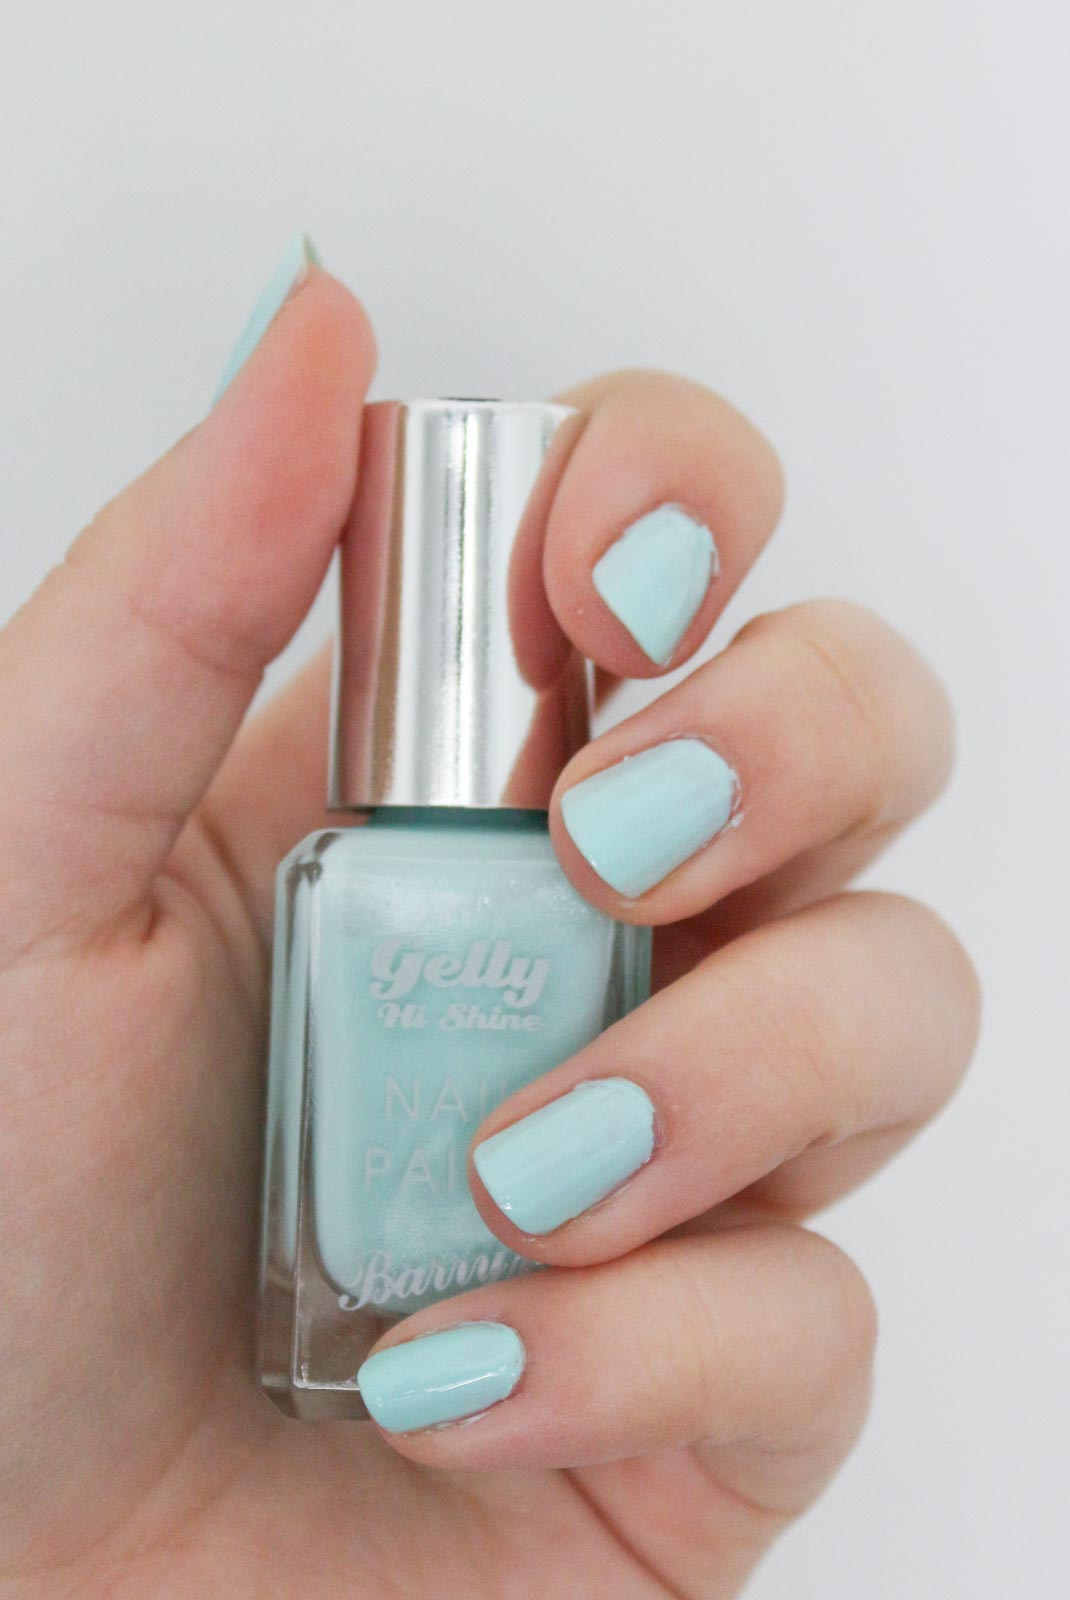 Barry M Gelly Hi Shine In Sugar Apple | Cate Renée